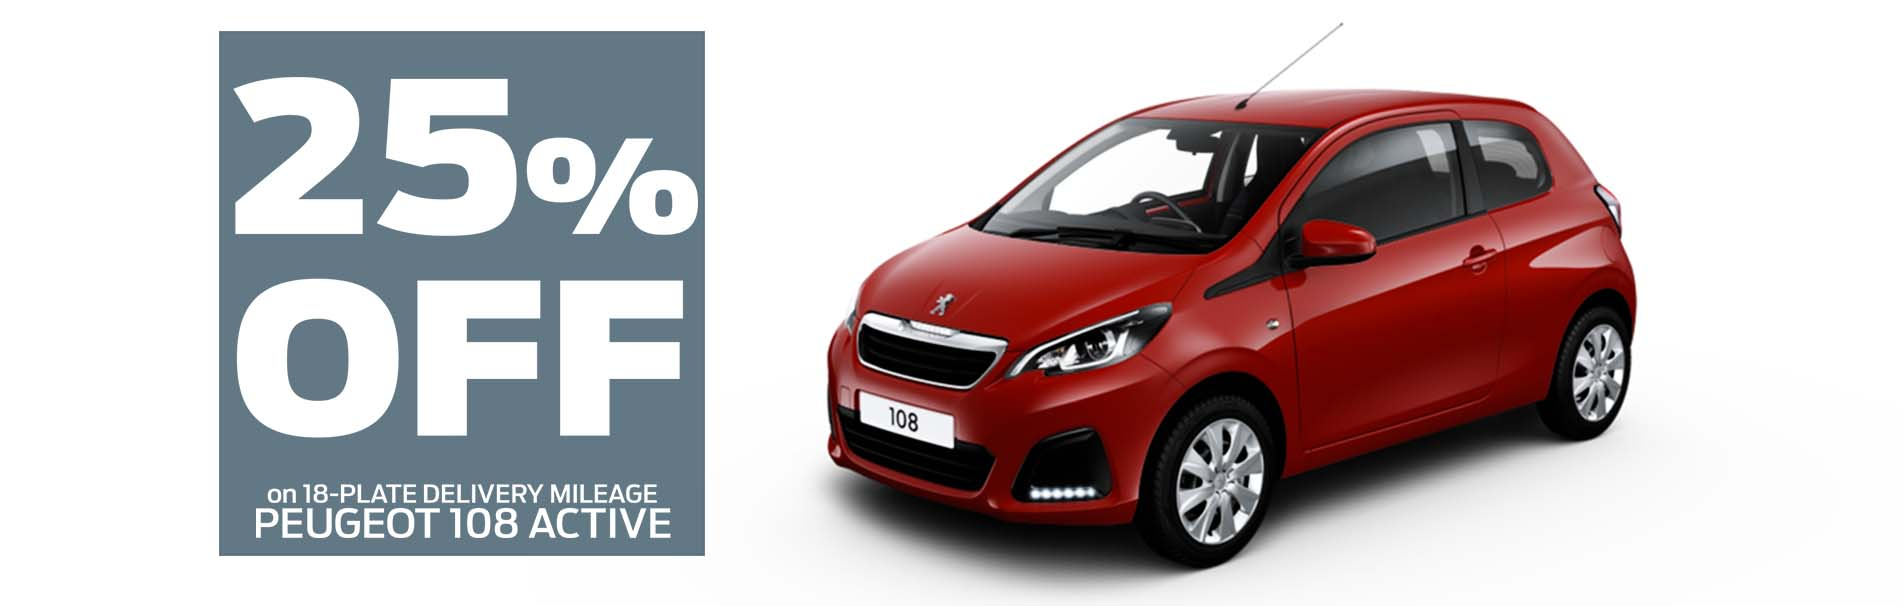 peugeot-108-active-delivery-mileage-25-percent-off-sli